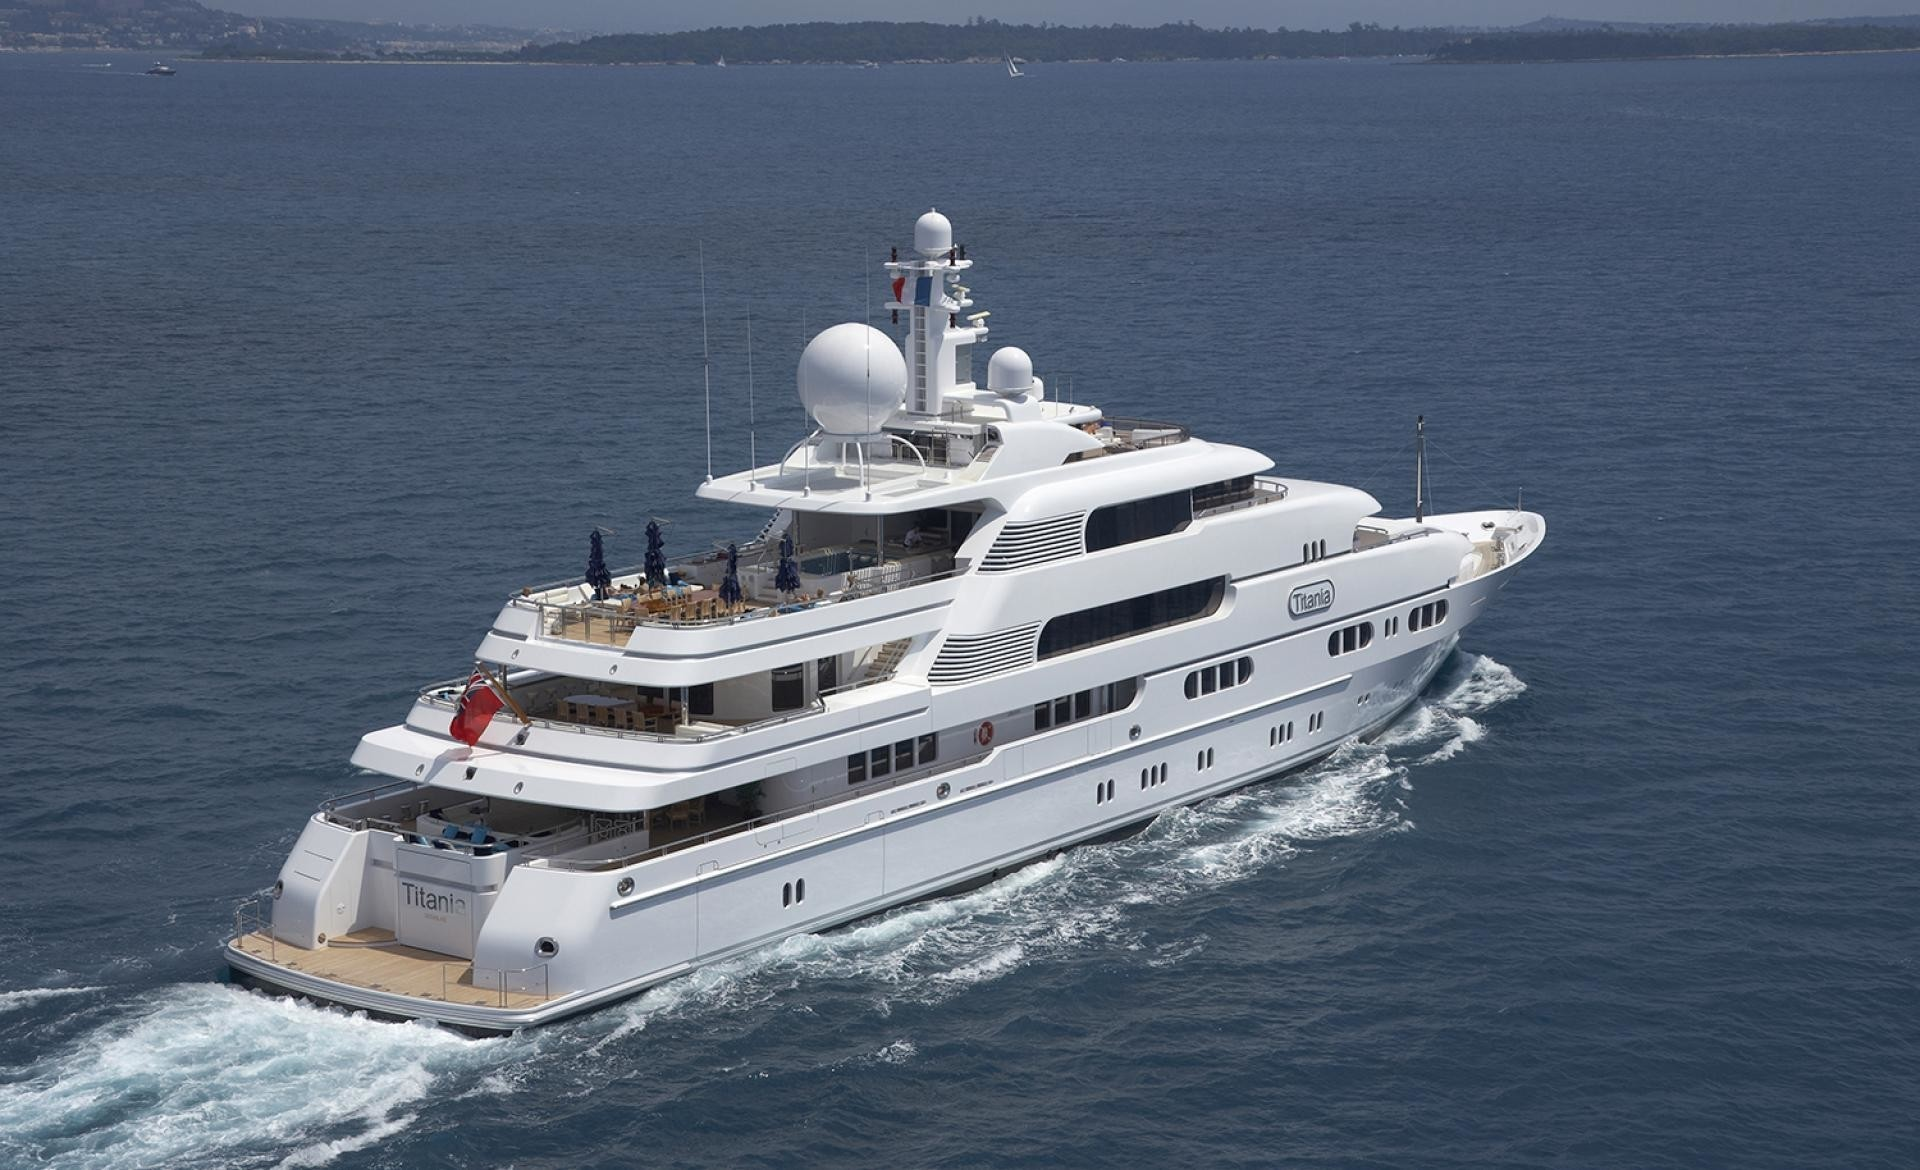 From Above Aspect: Yacht TITANIA's Cruising Captured